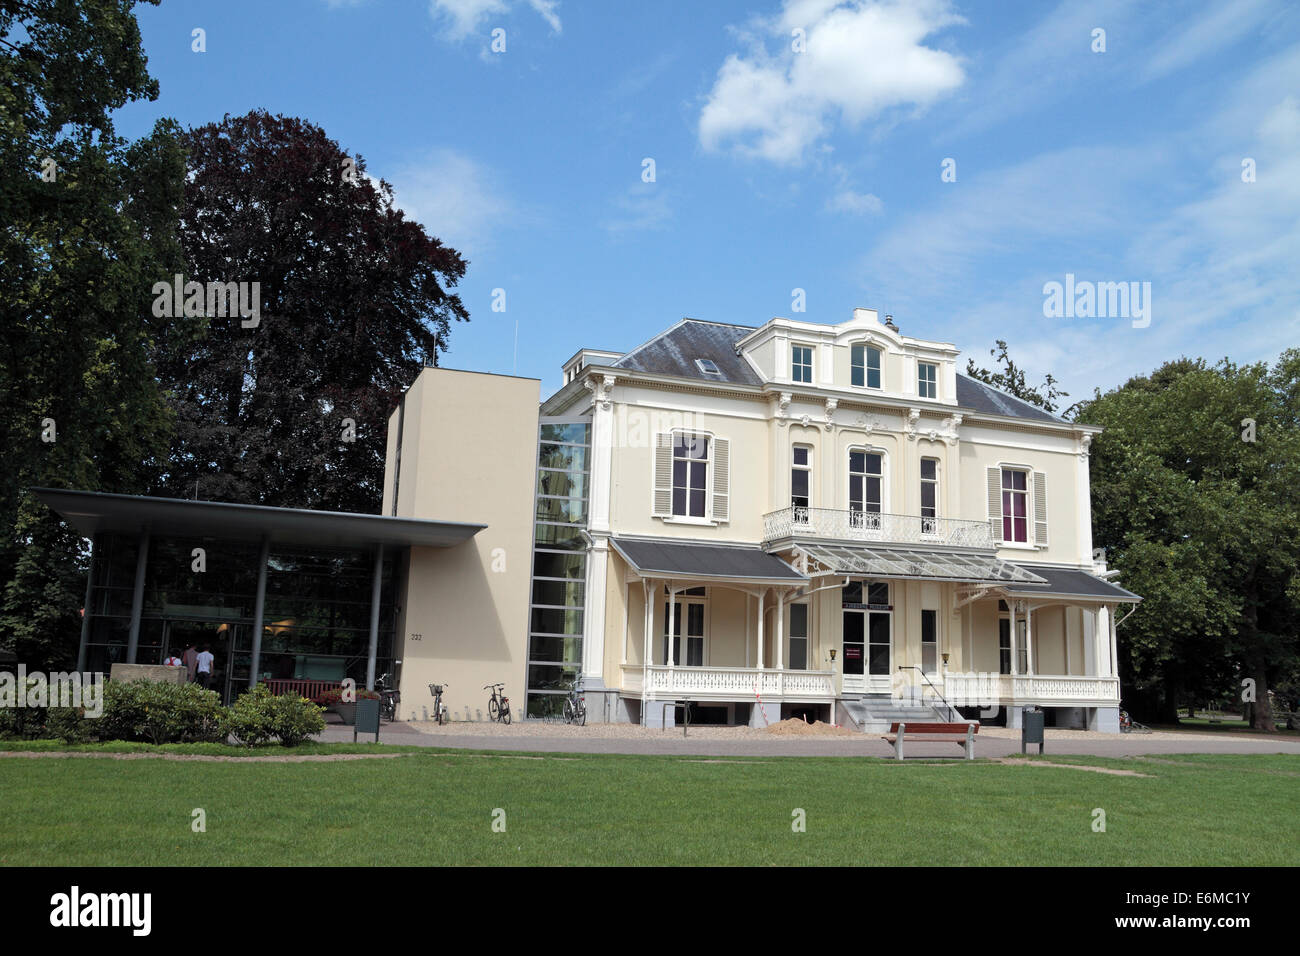 The Hartenstein (rear view), home to the Airborne Museum in Oosterbeek, near Arnhem, Gelderland, Netherlands. - Stock Image